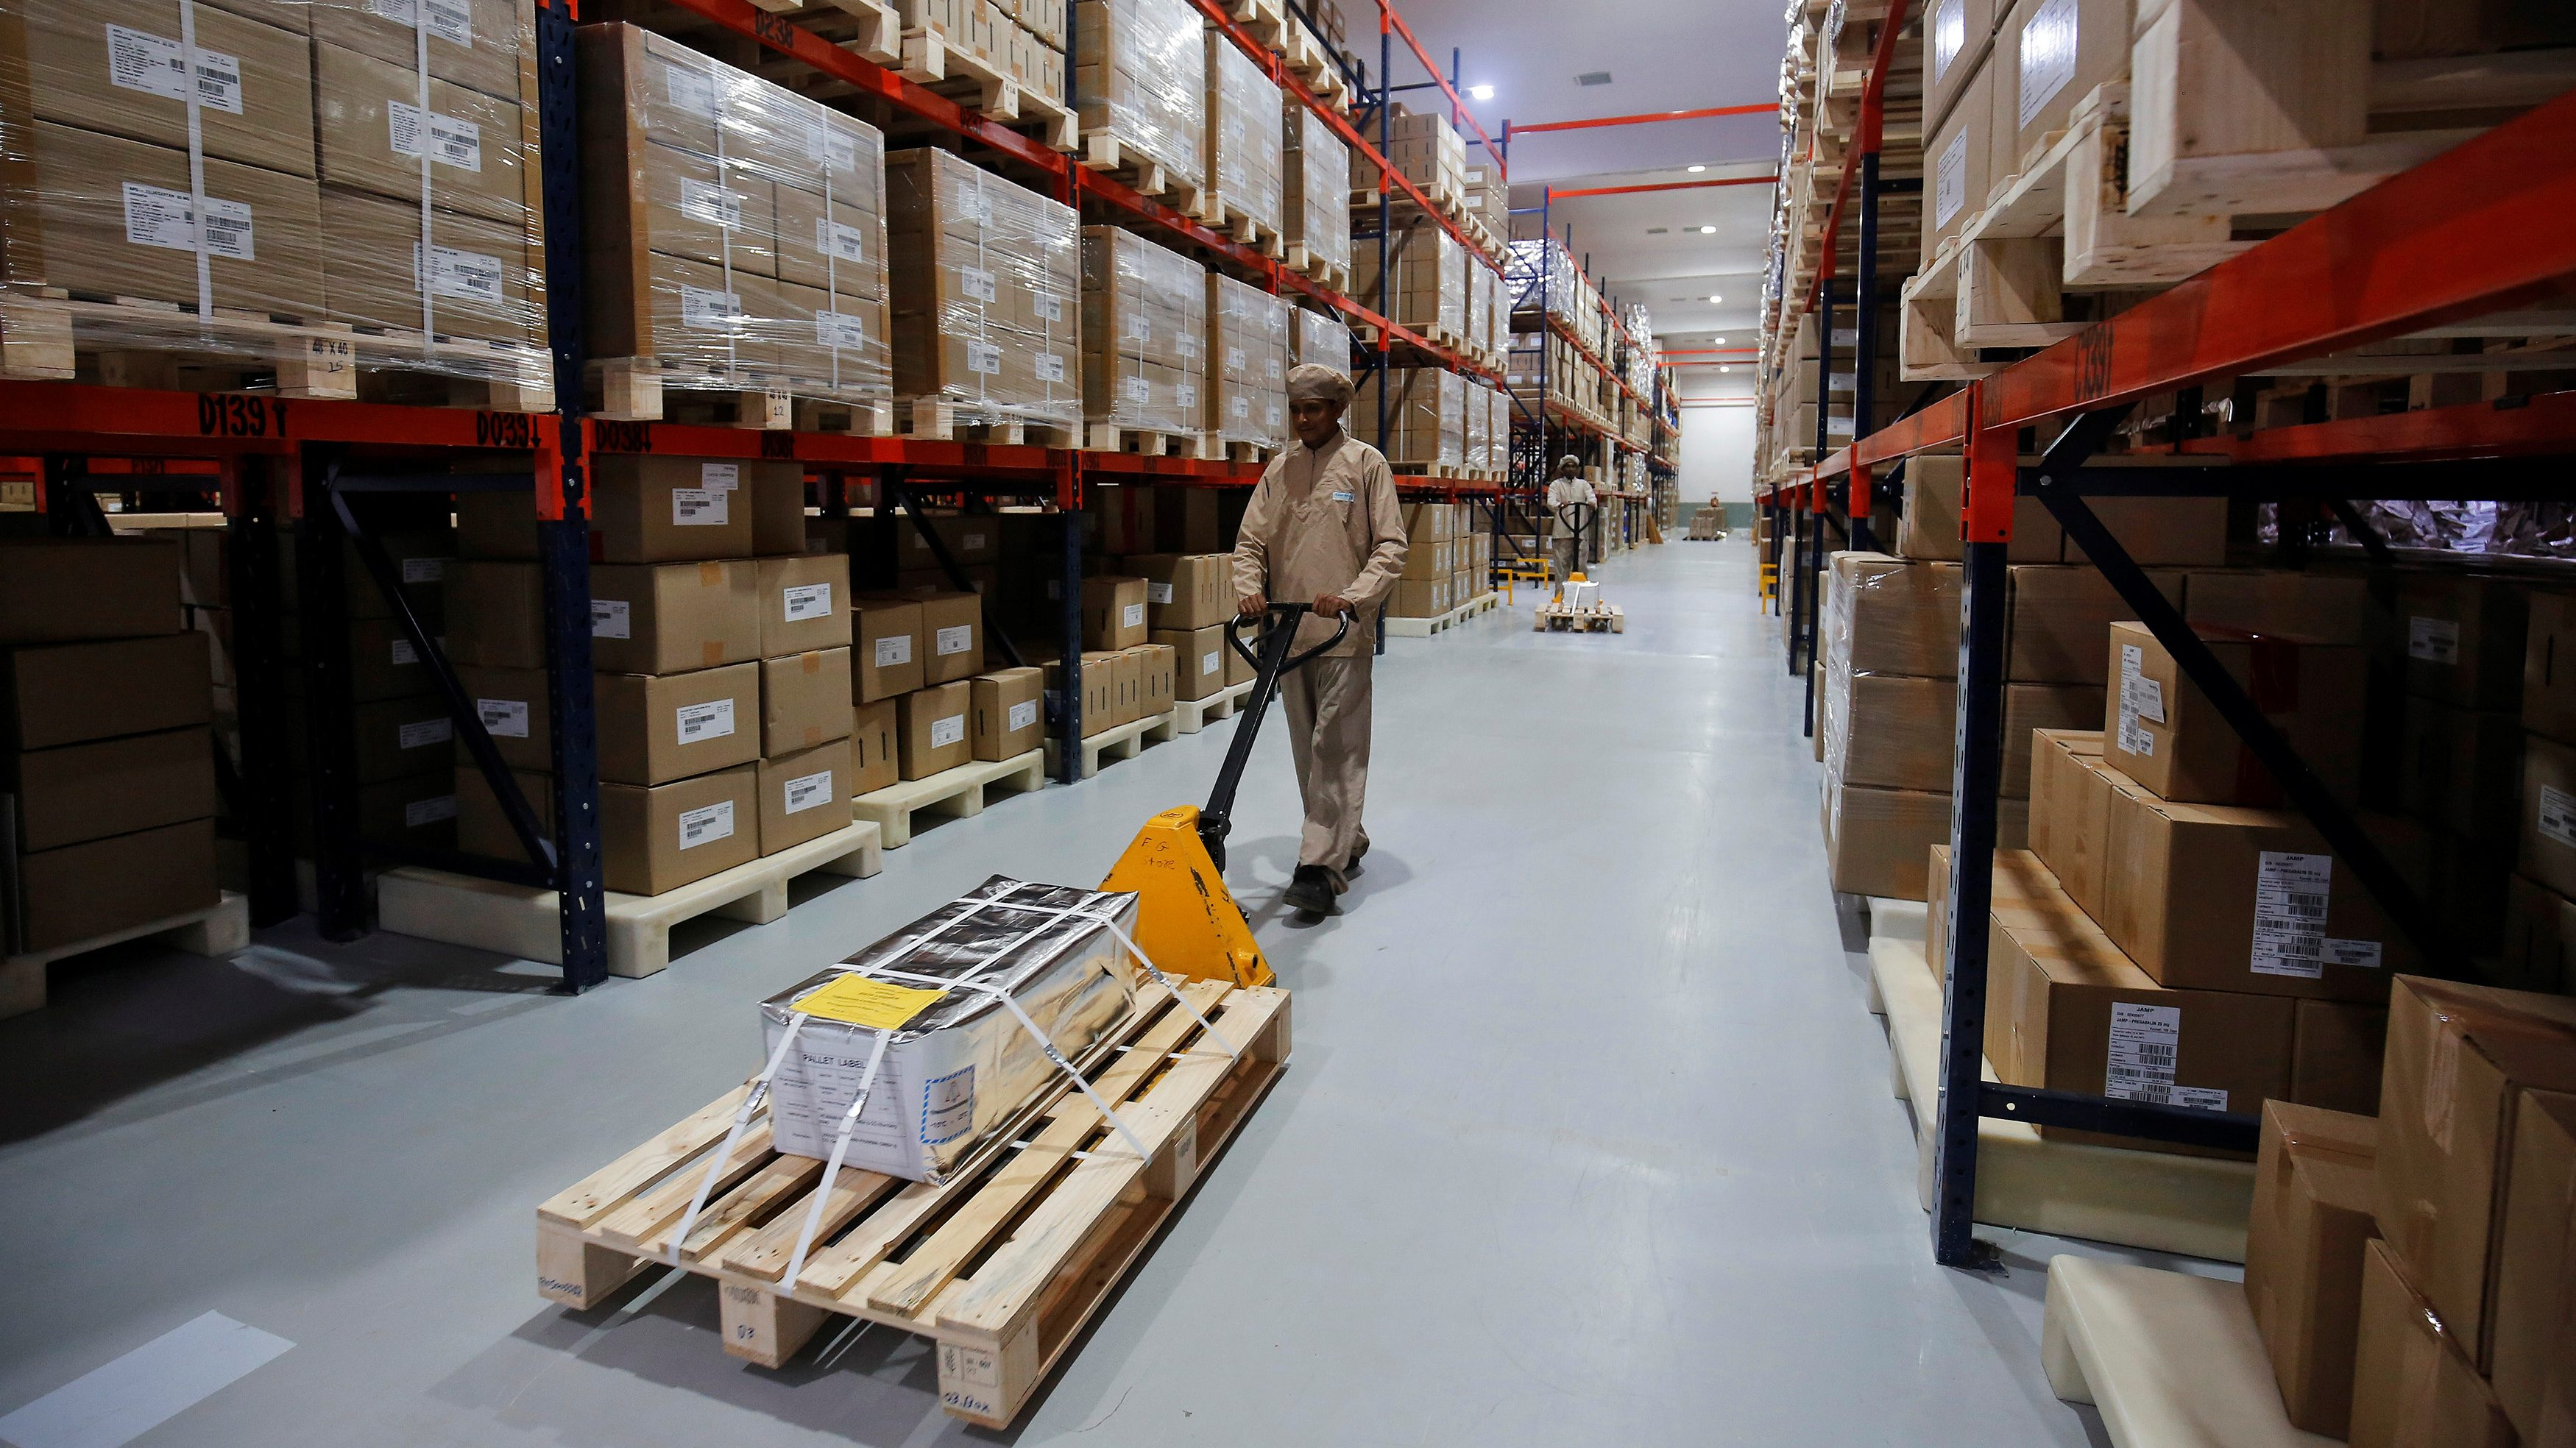 walmart and ikea have boosted warehousing jobs in india